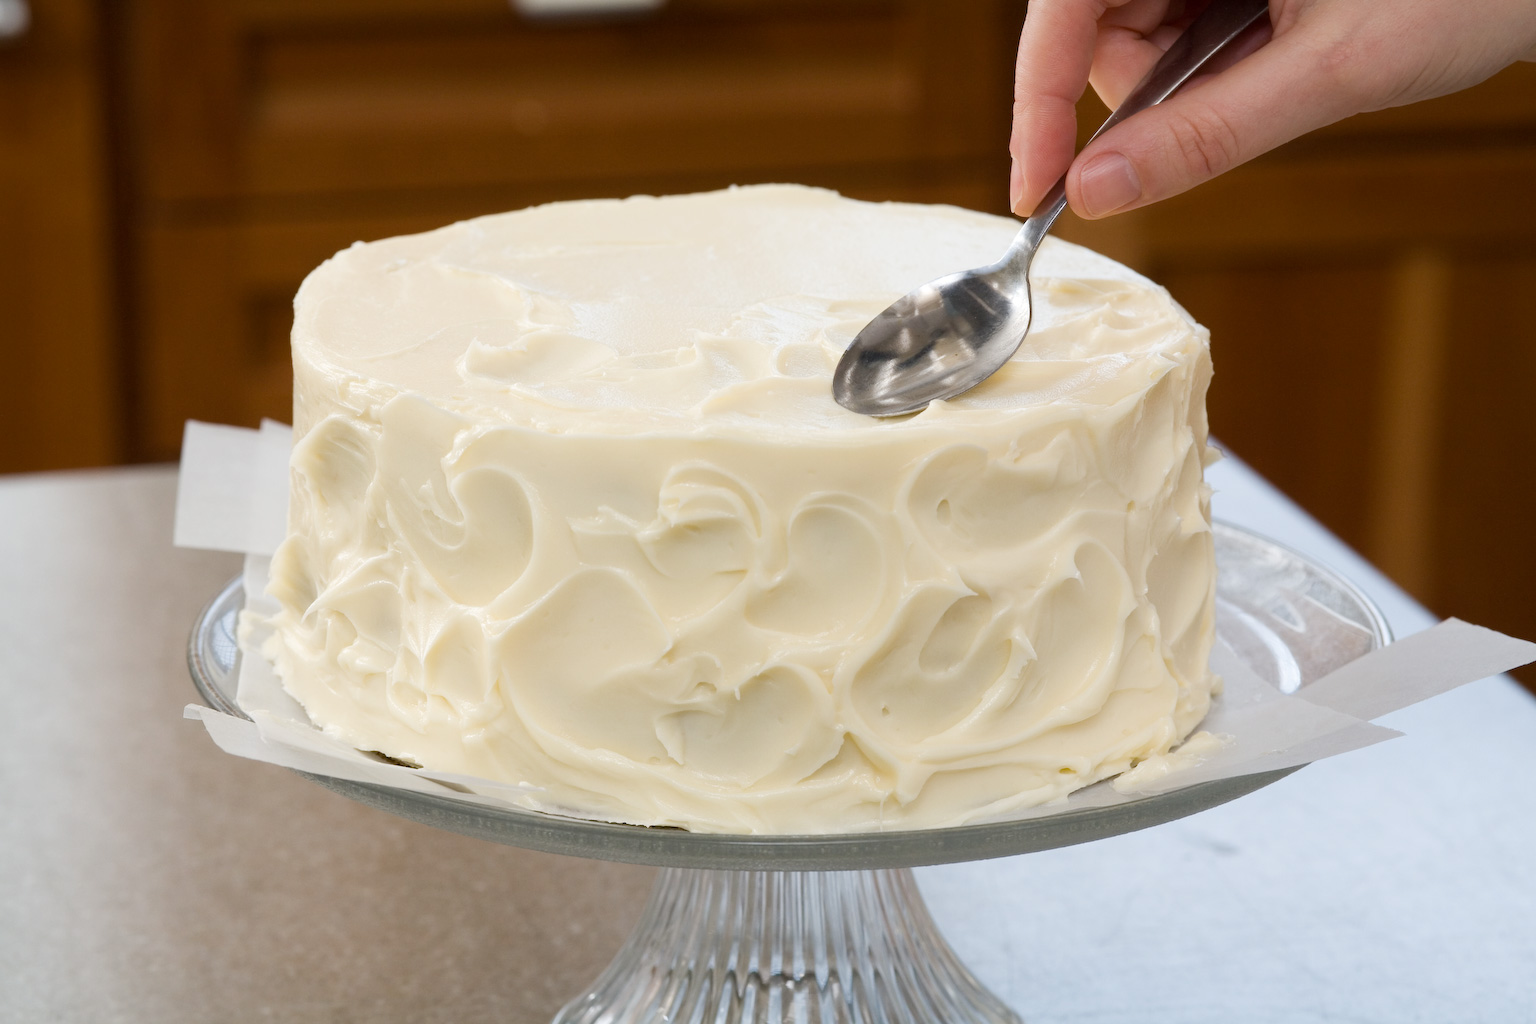 Easy Bake Games Secrets To Decorating Layer Cakes